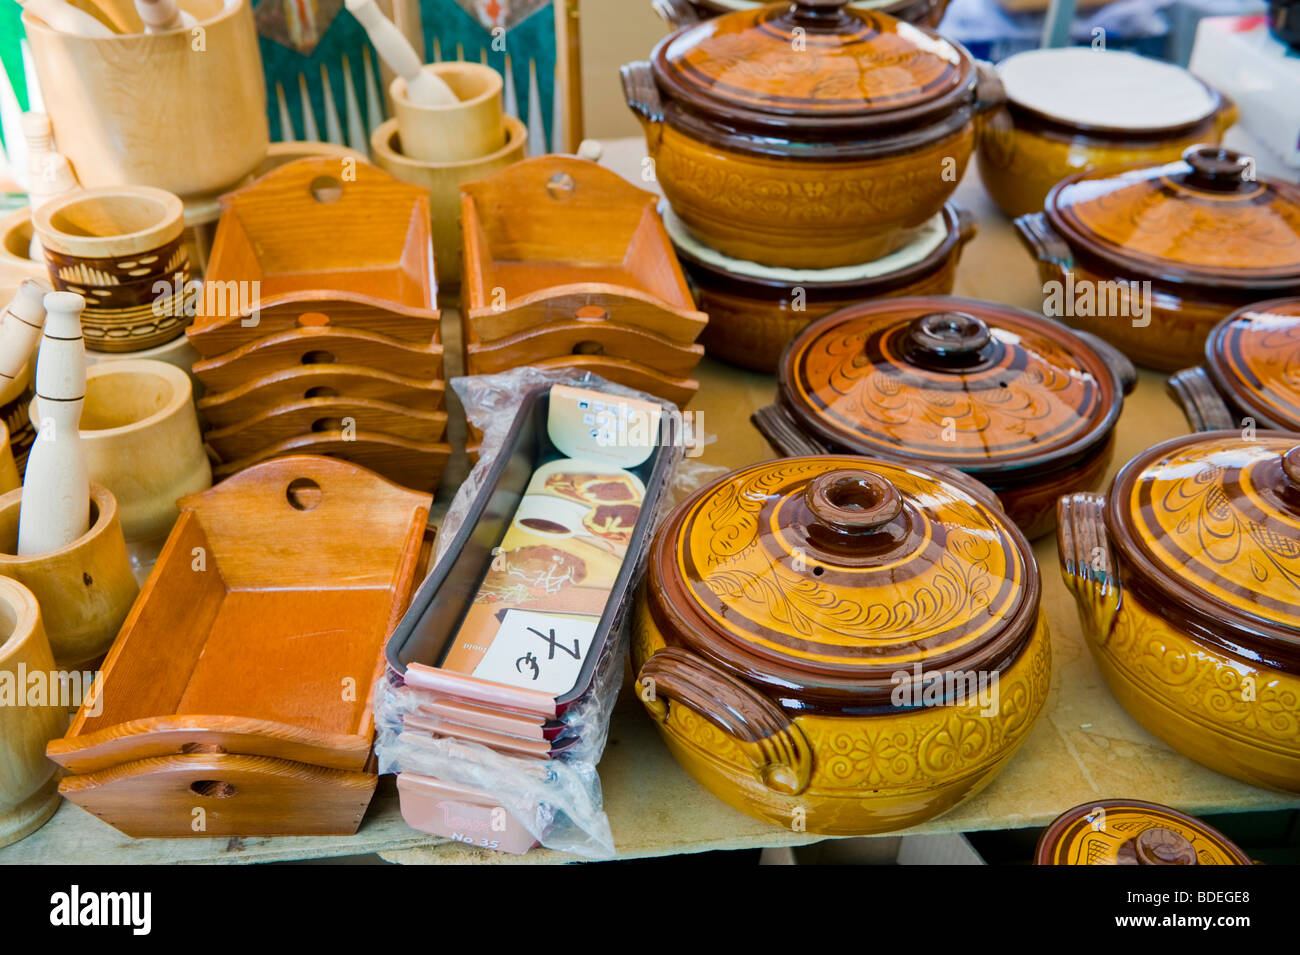 Kitchen utensils for sale at annual festival market at St Gerasimos Monastery on the Greek island of Kefalonia Greece Stock Photo